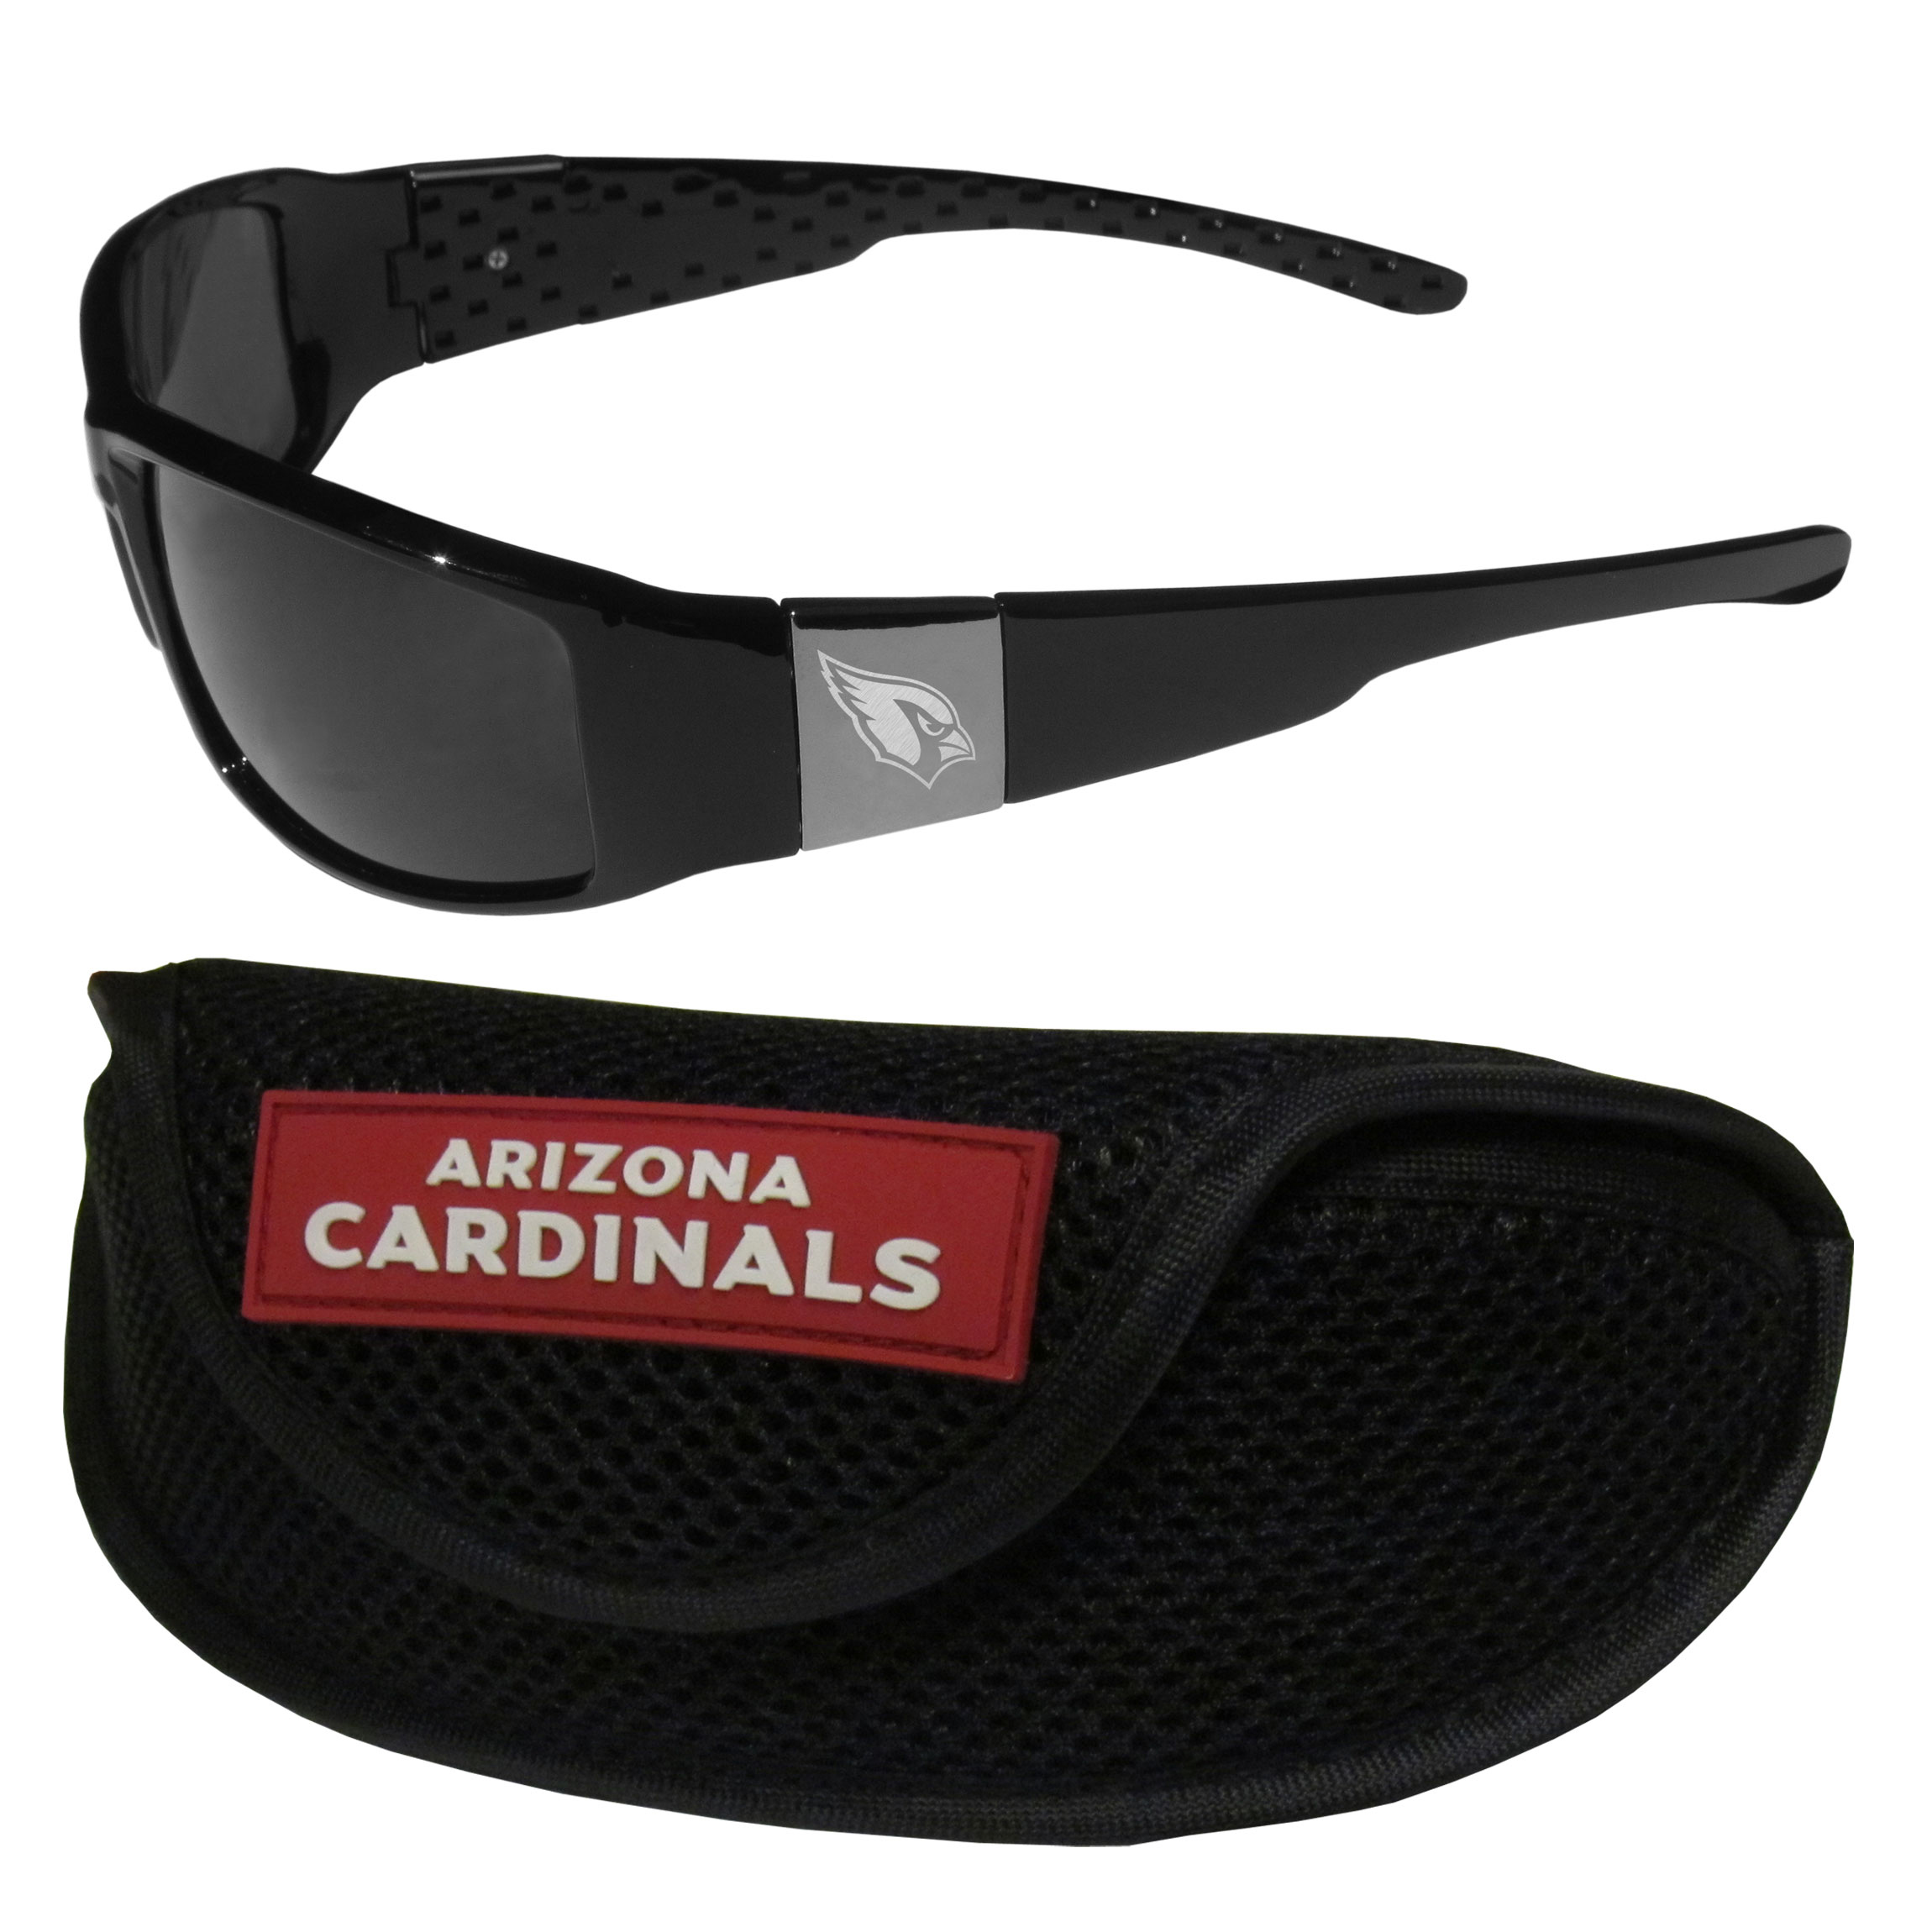 Arizona Cardinals Chrome Wrap Sunglasses and Sports Case - Our sleek and stylish Arizona Cardinals chrome wrap sunglasses and our sporty mesh case. The sunglasses feature etched team logos on each arm and 100% UVA/UVB protection. The case features a large and colorful team emblem.